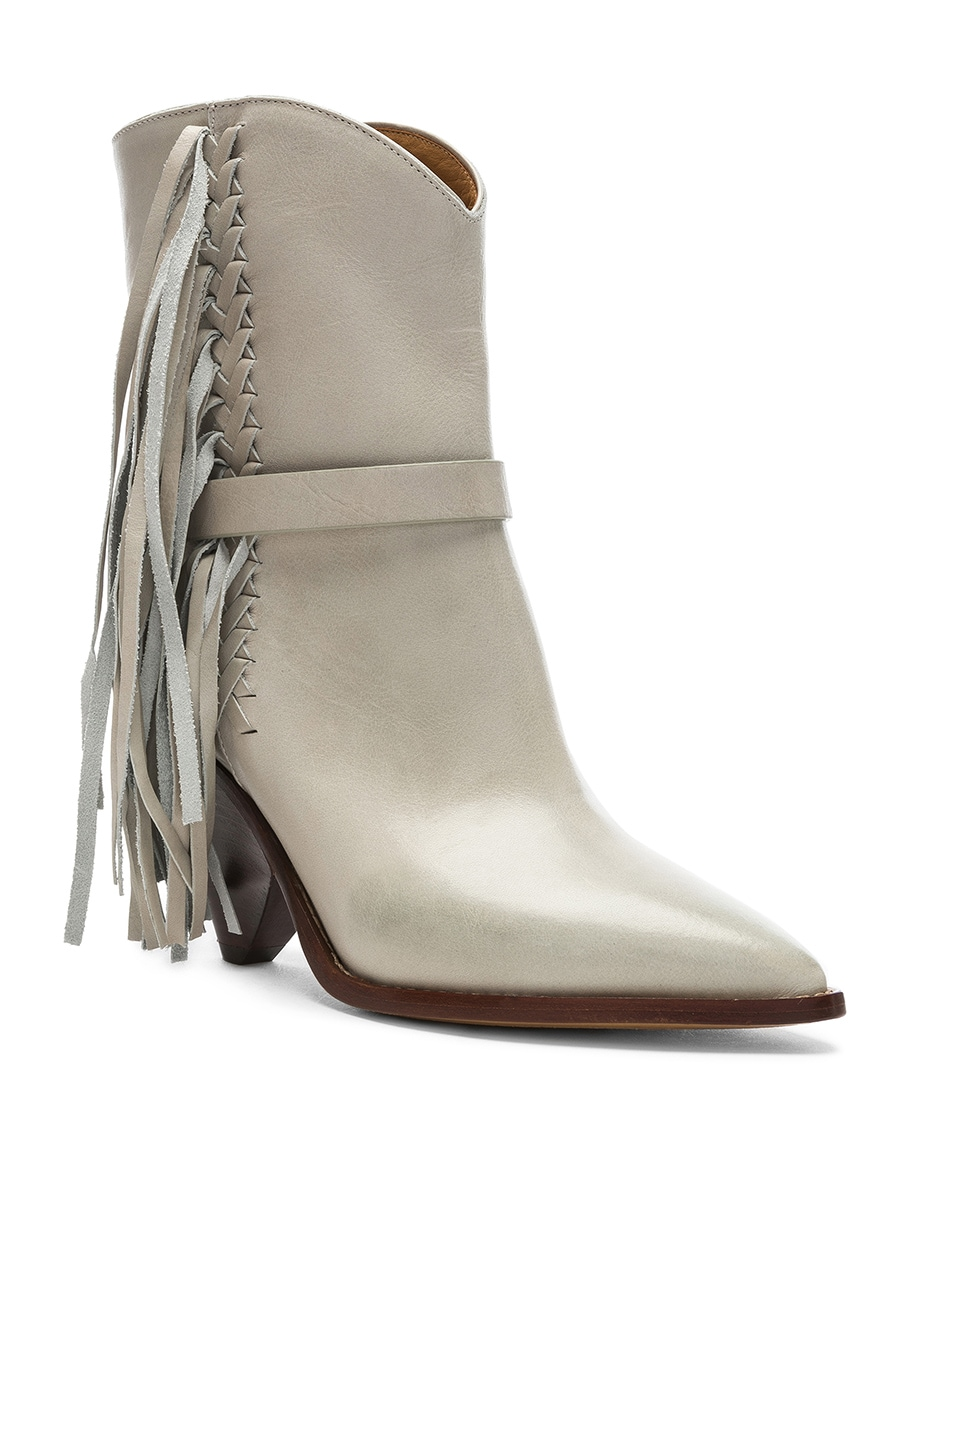 Image 2 of Isabel Marant Leather Loffen Boots in Chalk